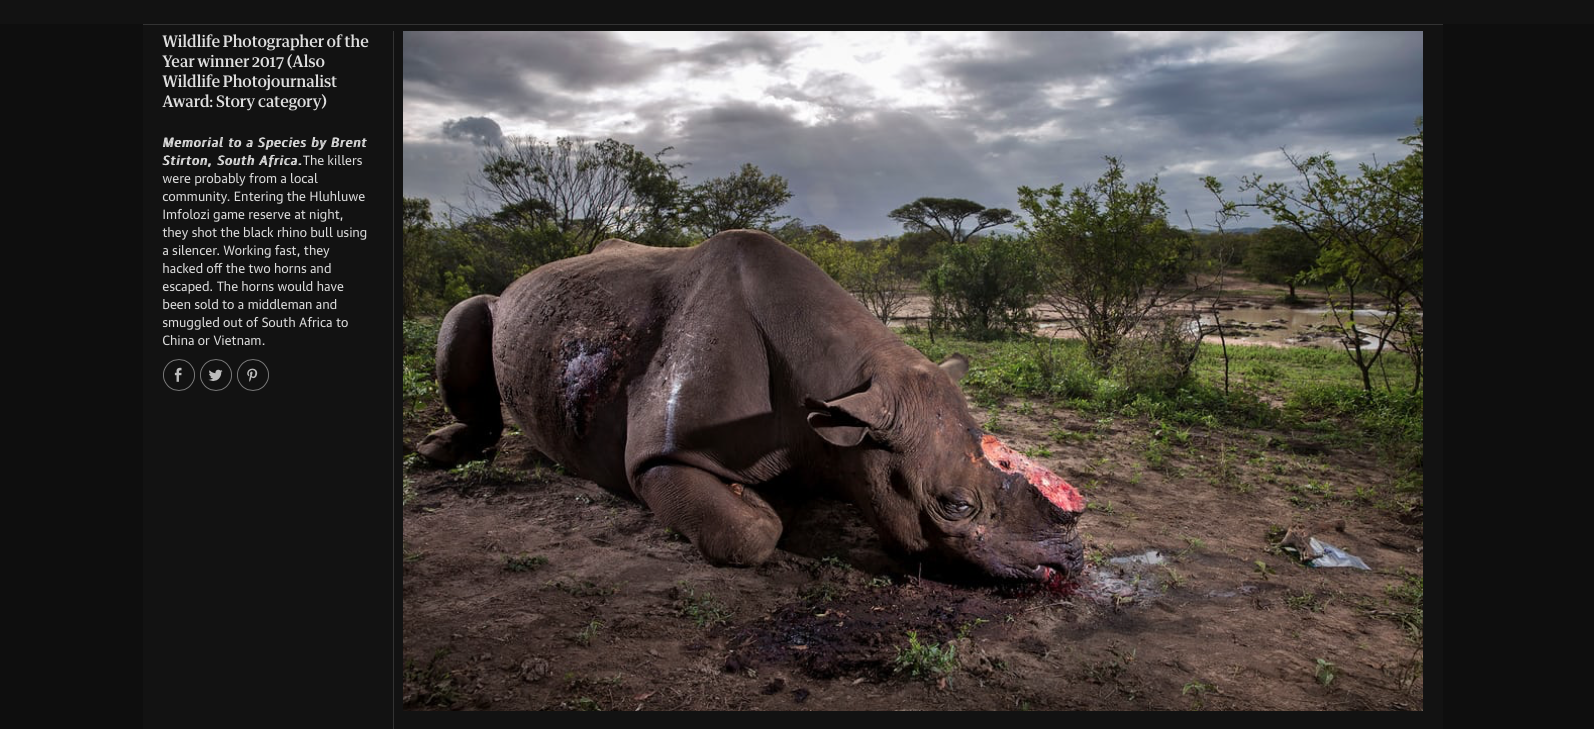 ©Brent Stirton/Natural History Museum WPOTY 2017 via The Guardfian